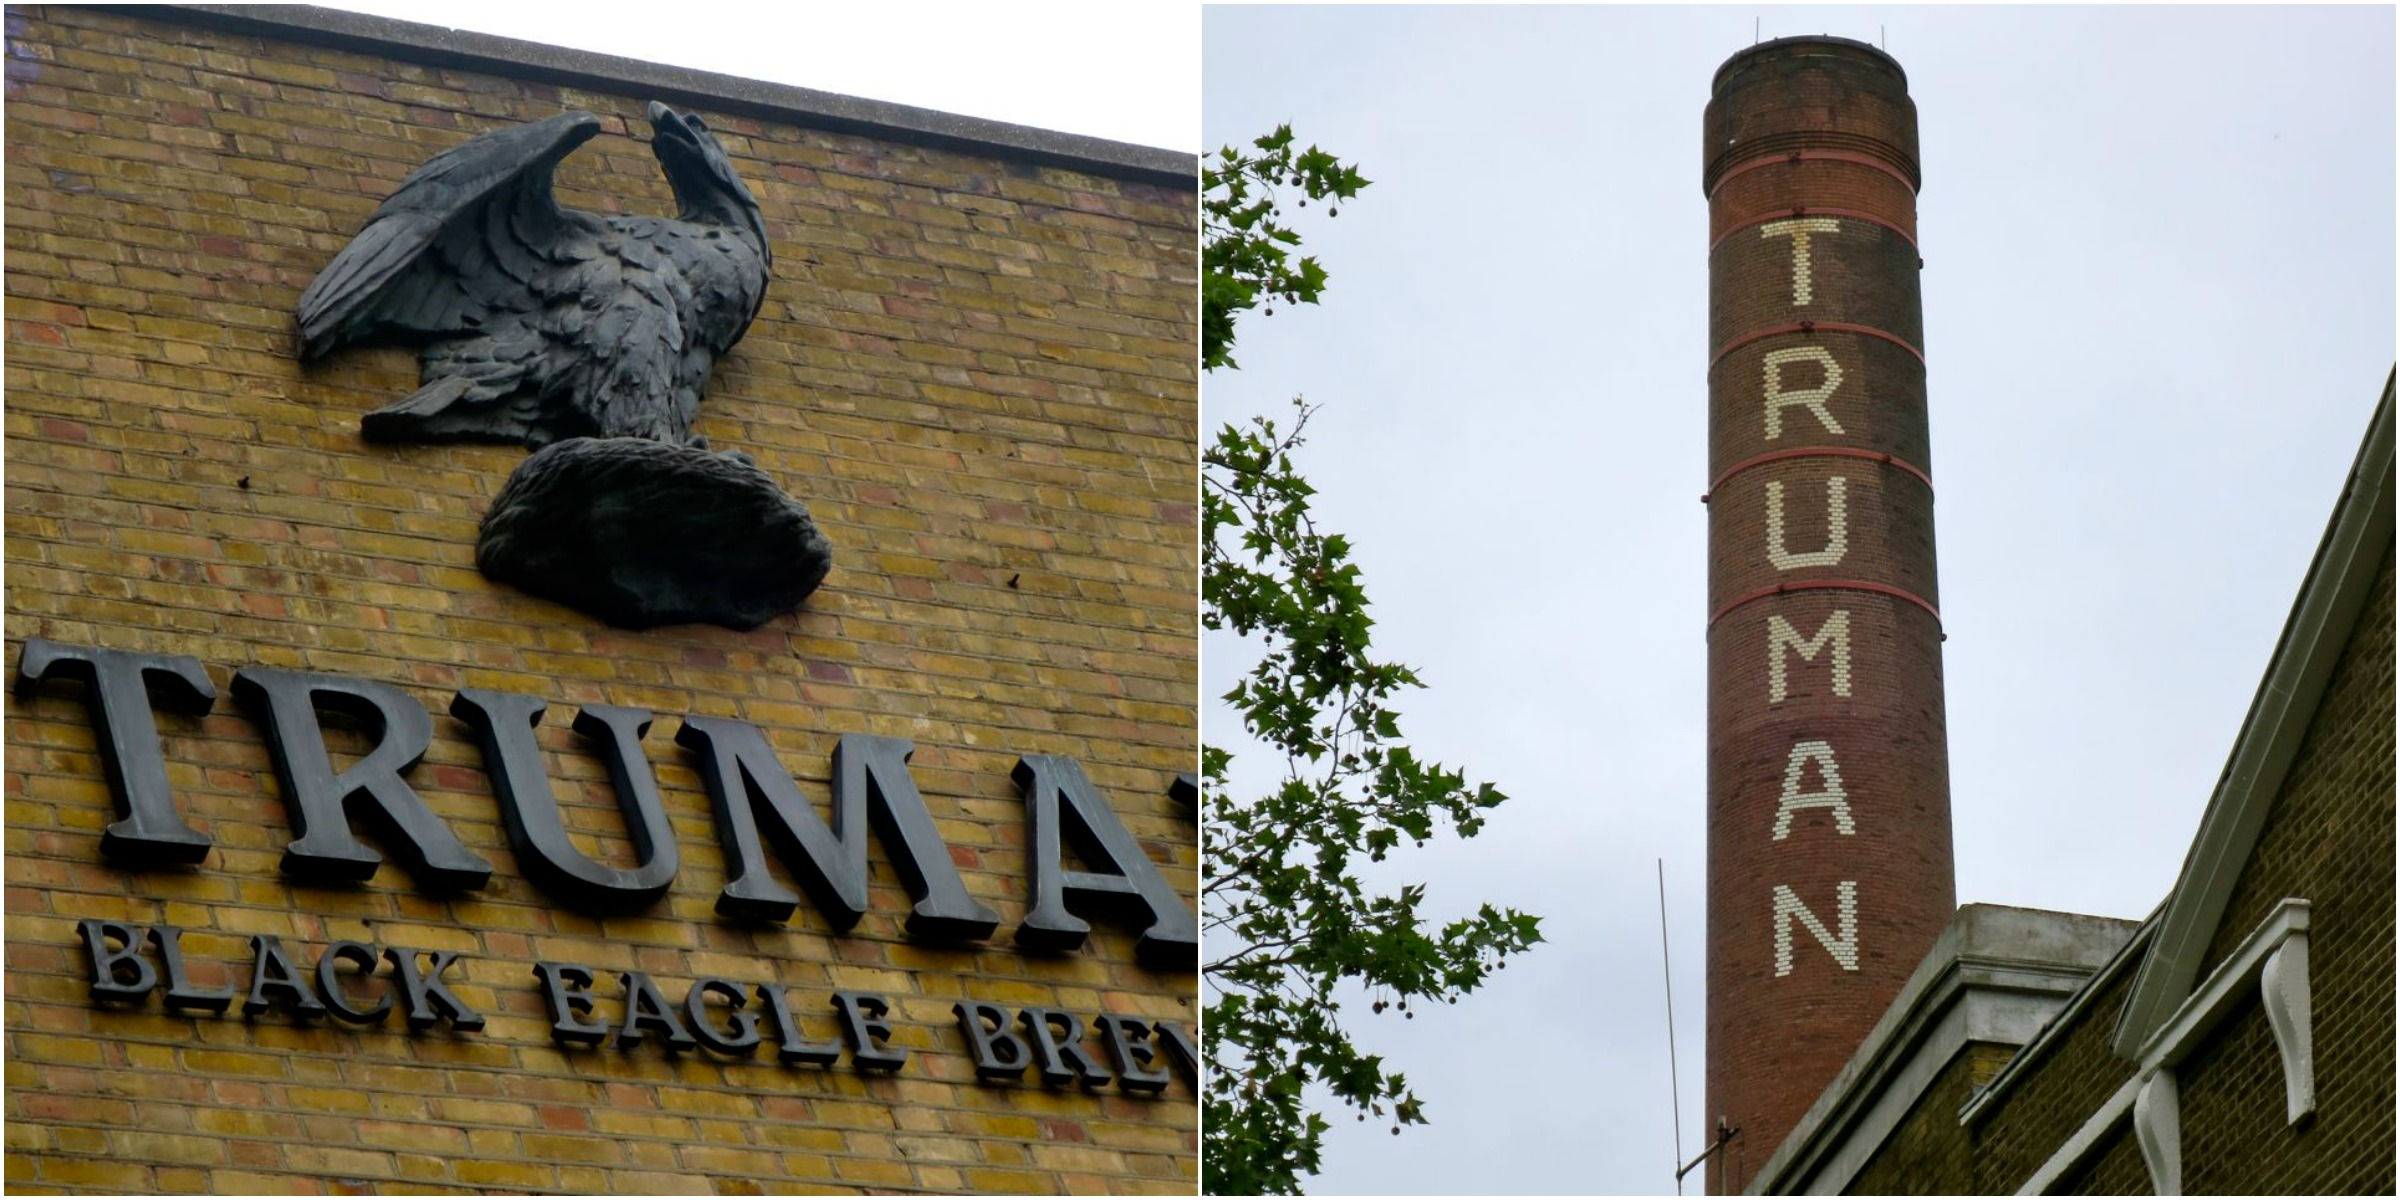 Old Truman Brewery.